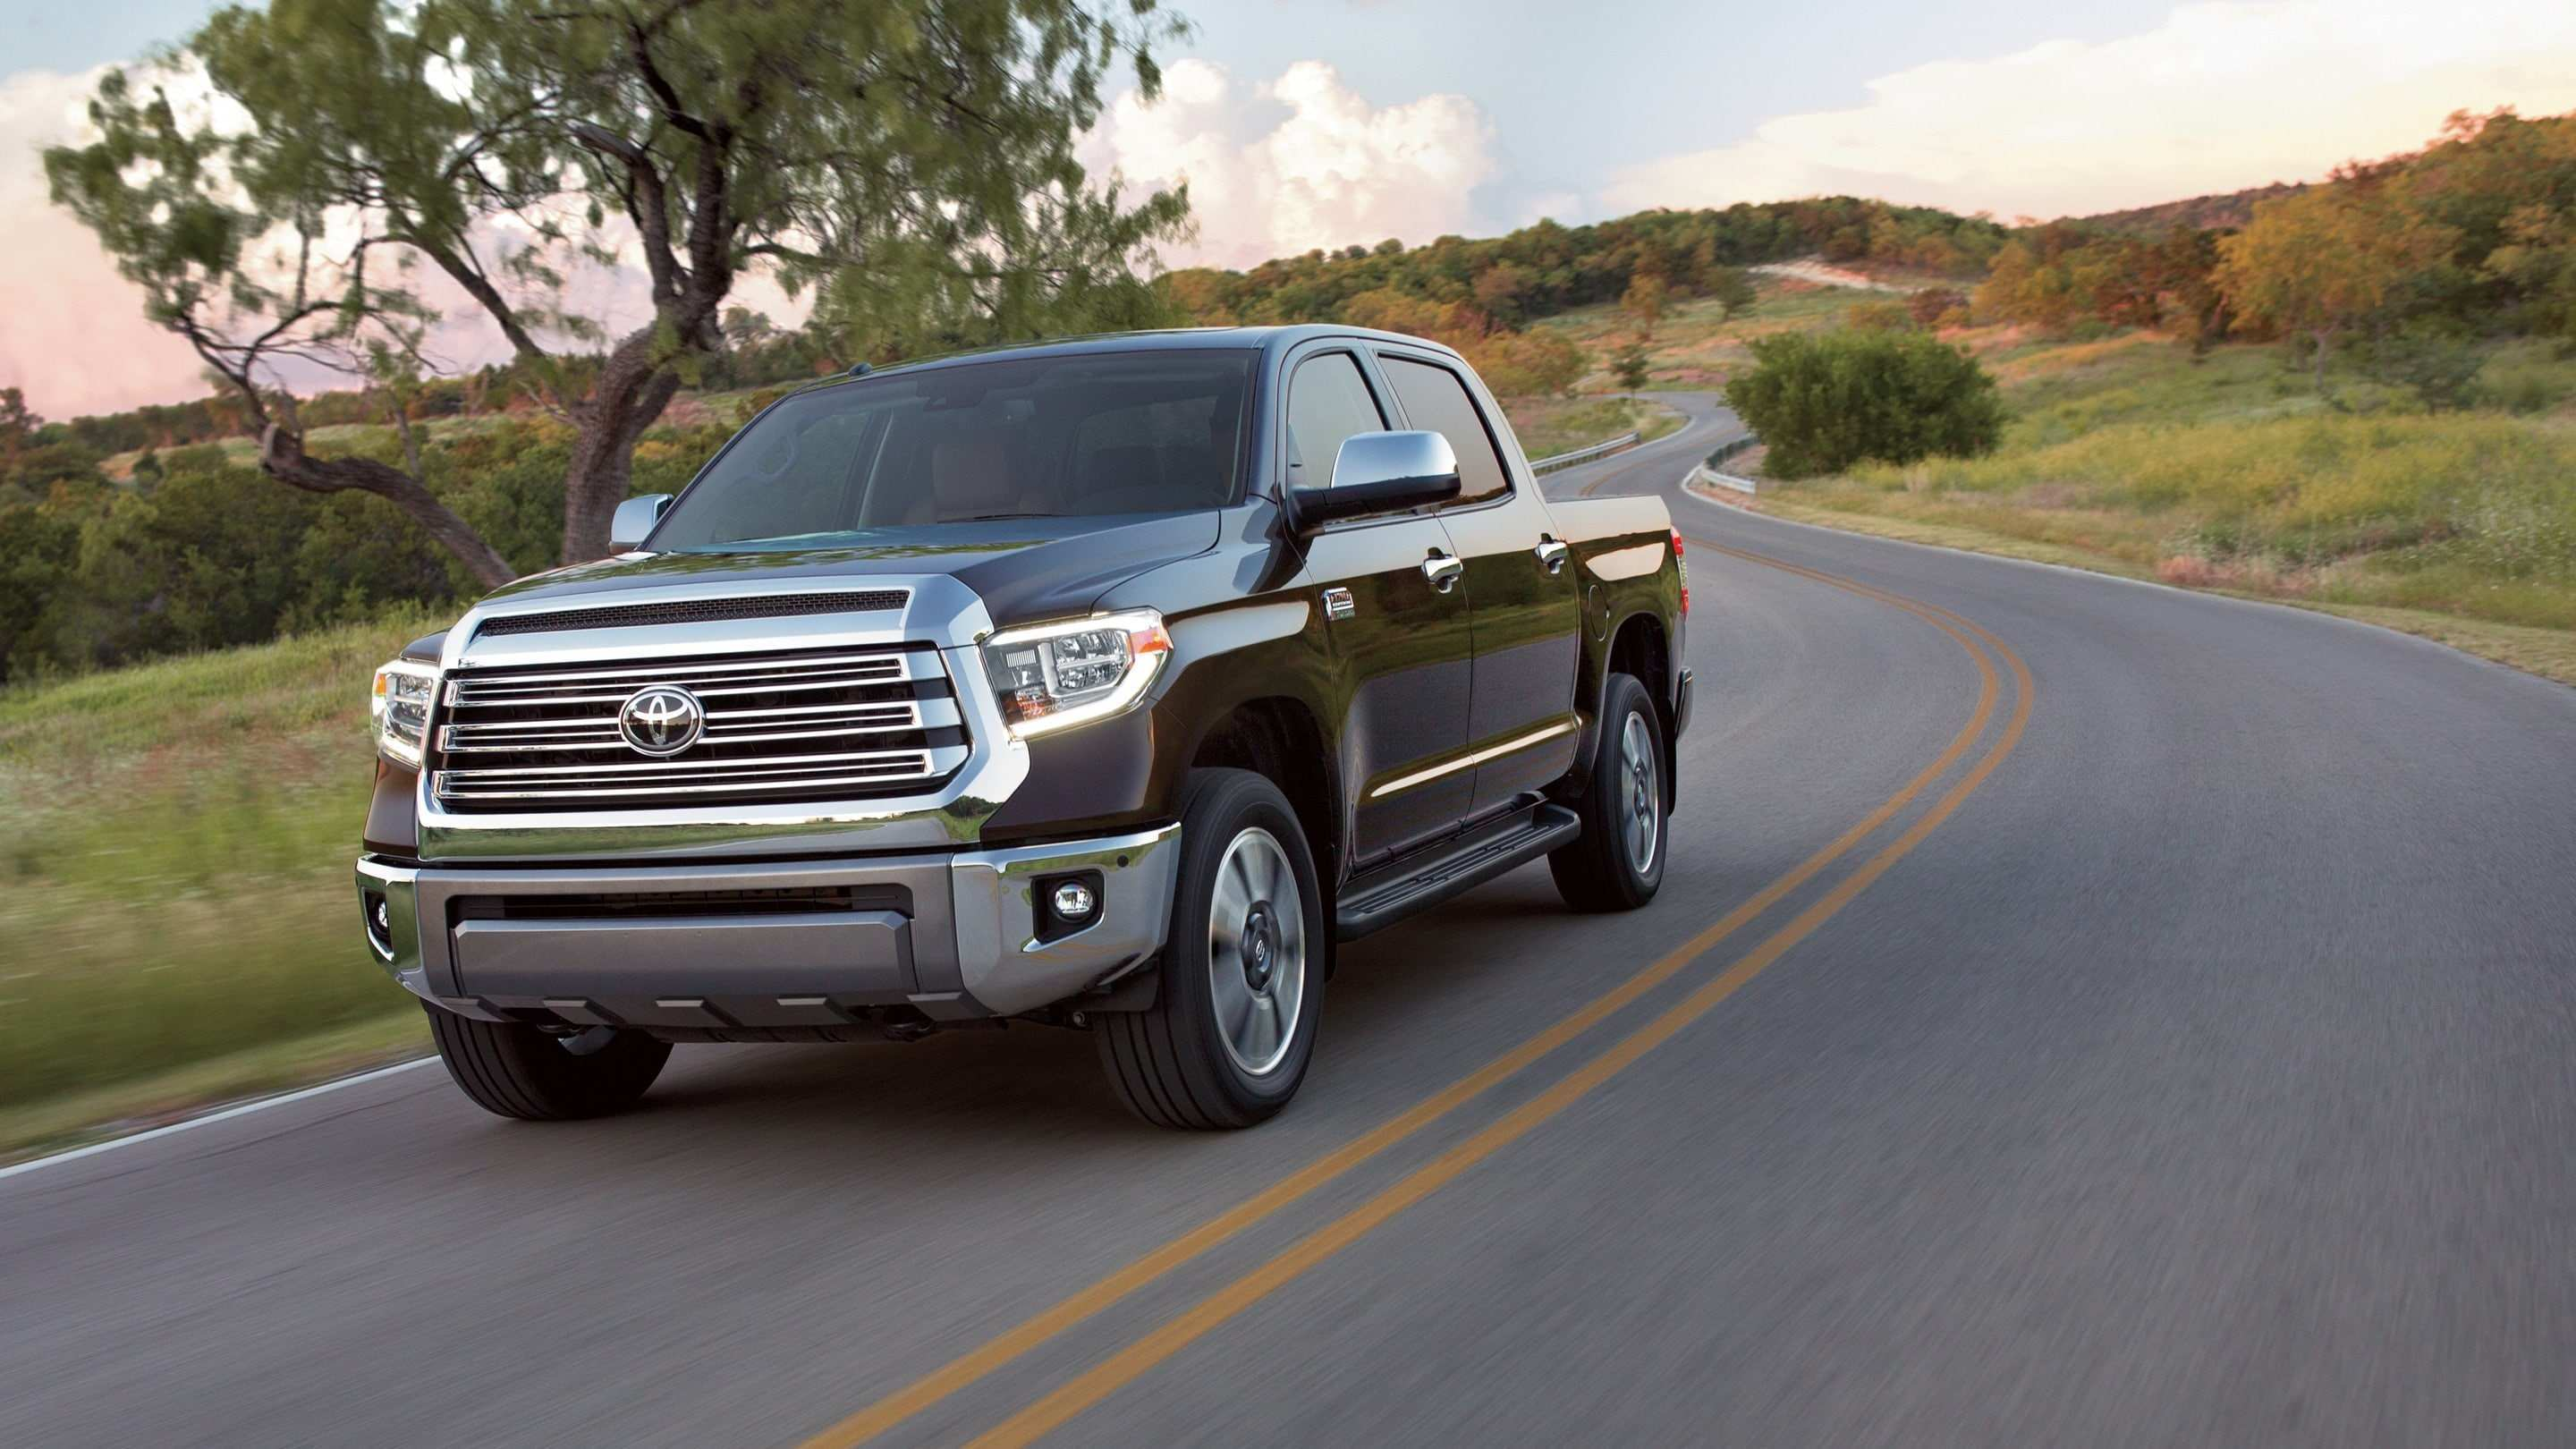 49 All New 2019 Toyota Tundra Wallpaper